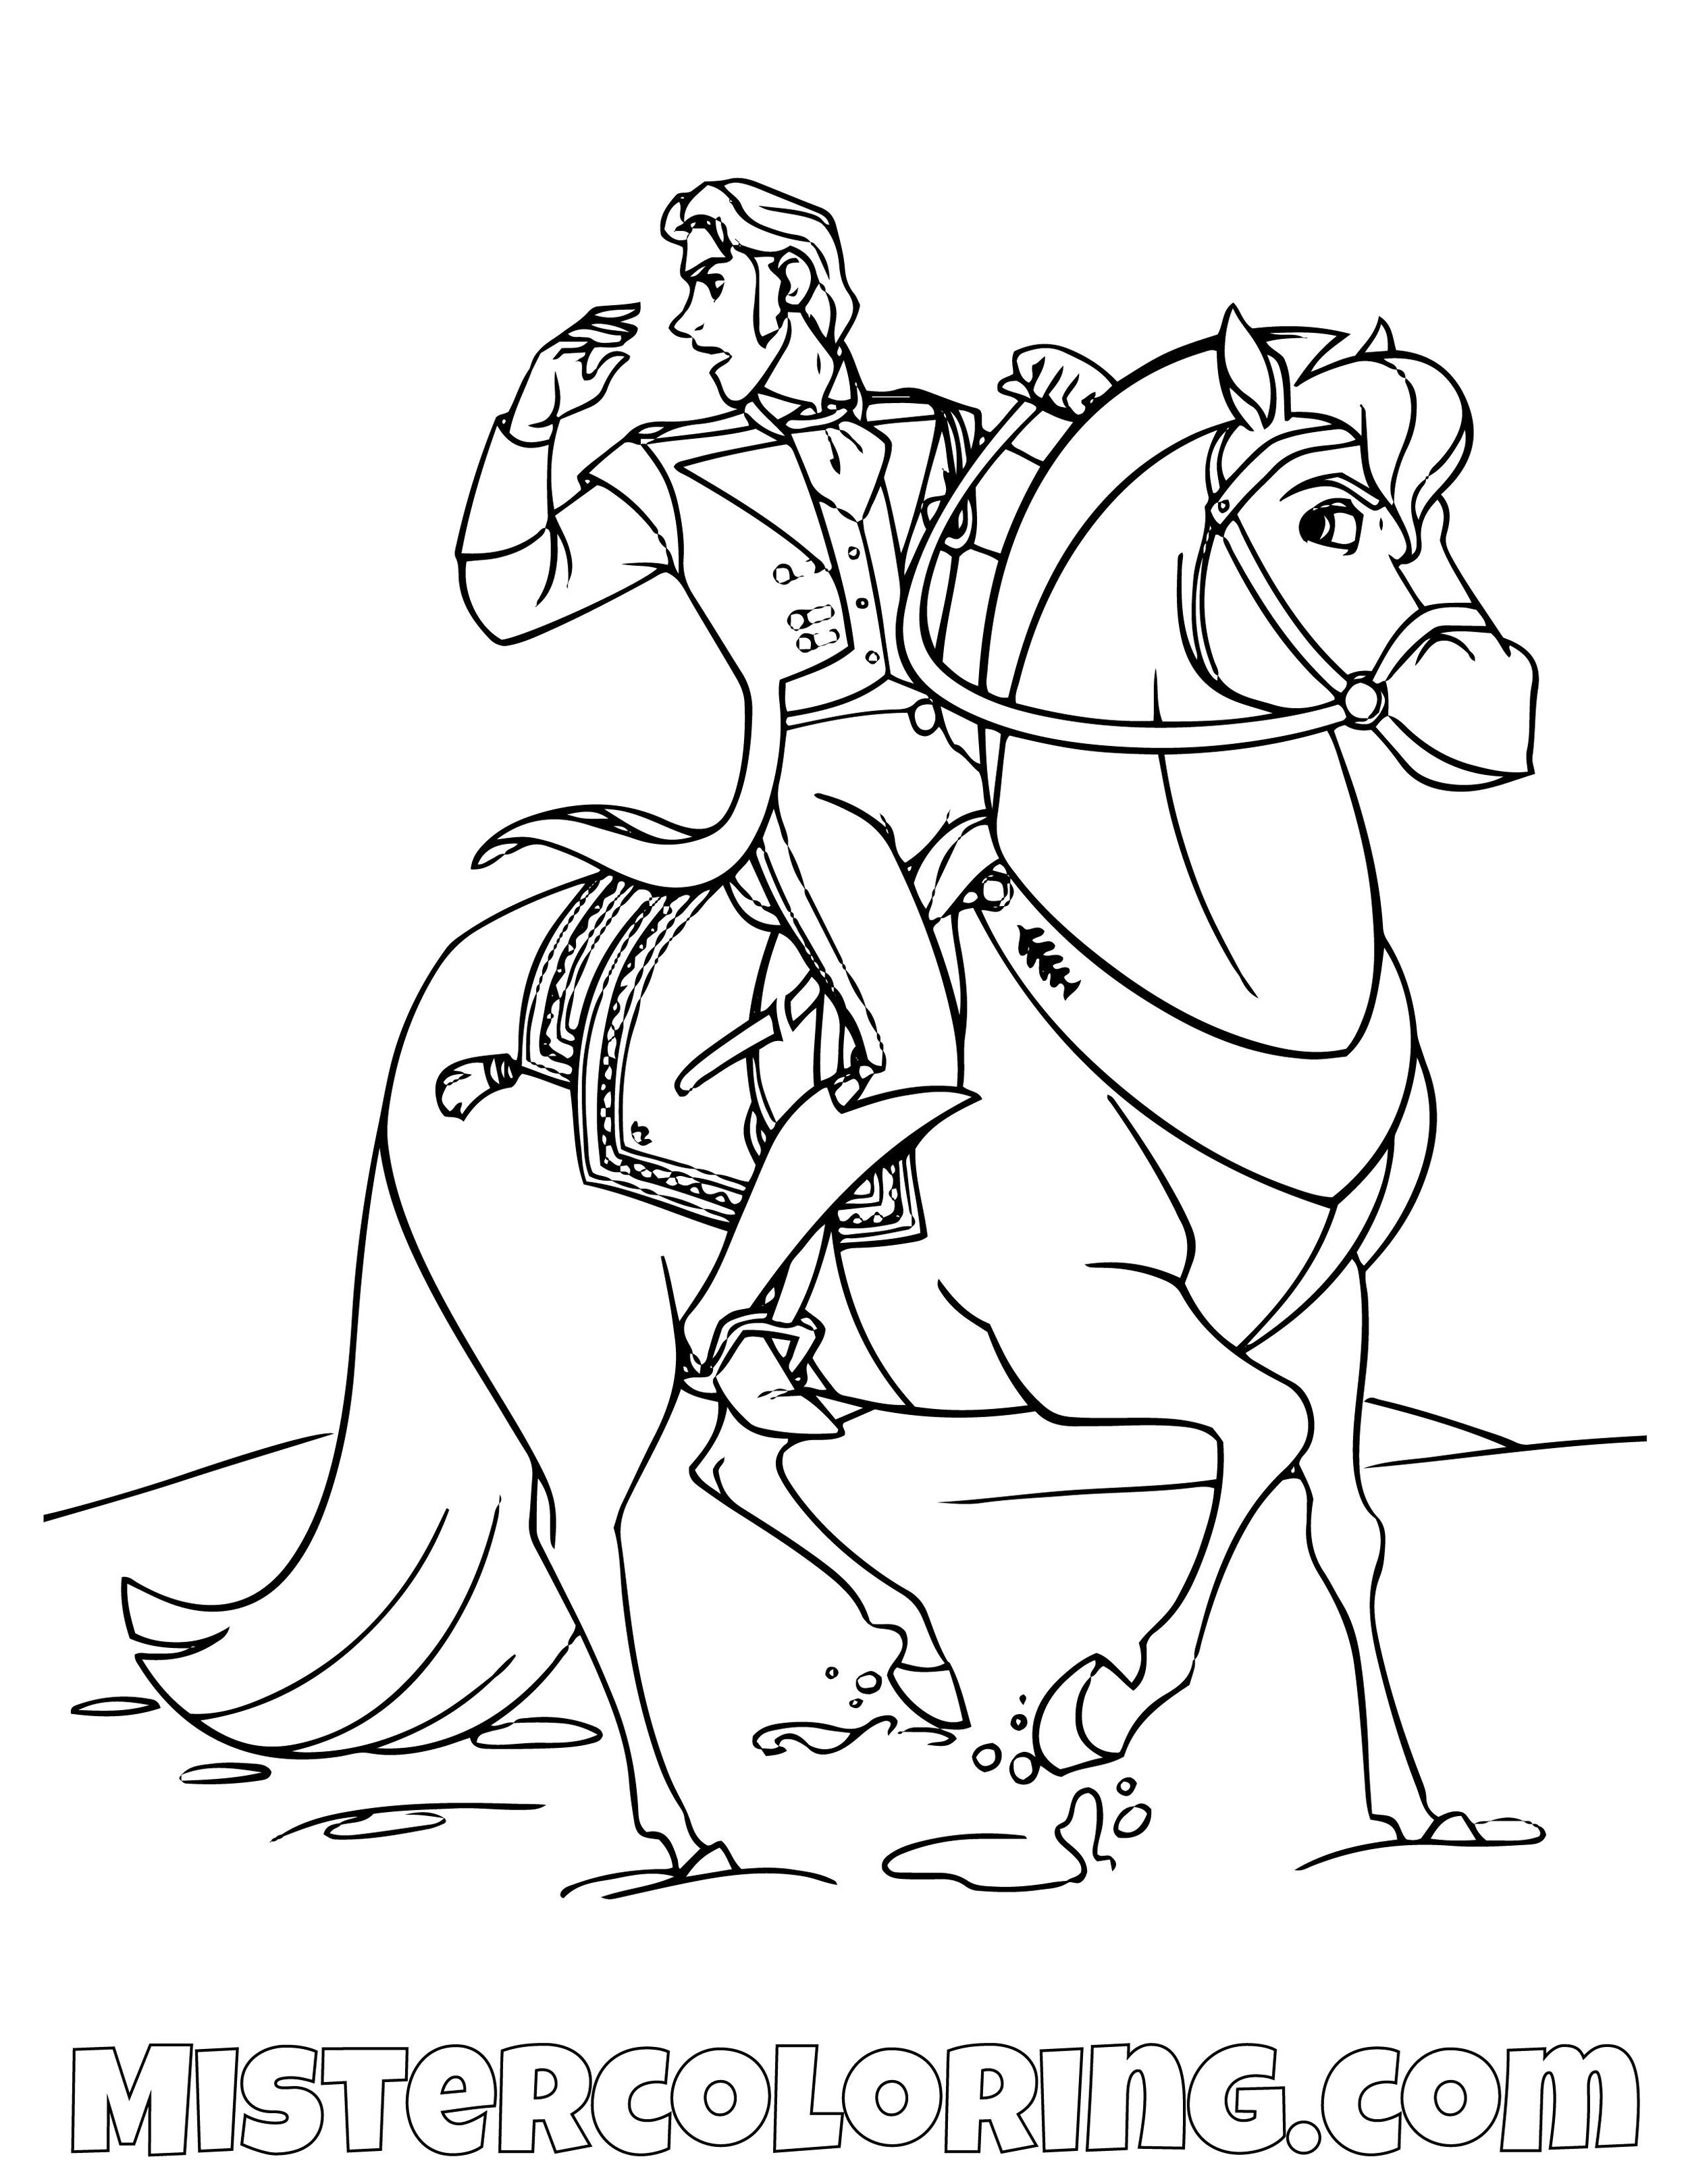 Frozen 2 Ice Horse Coloring Pages - colouring mermaid